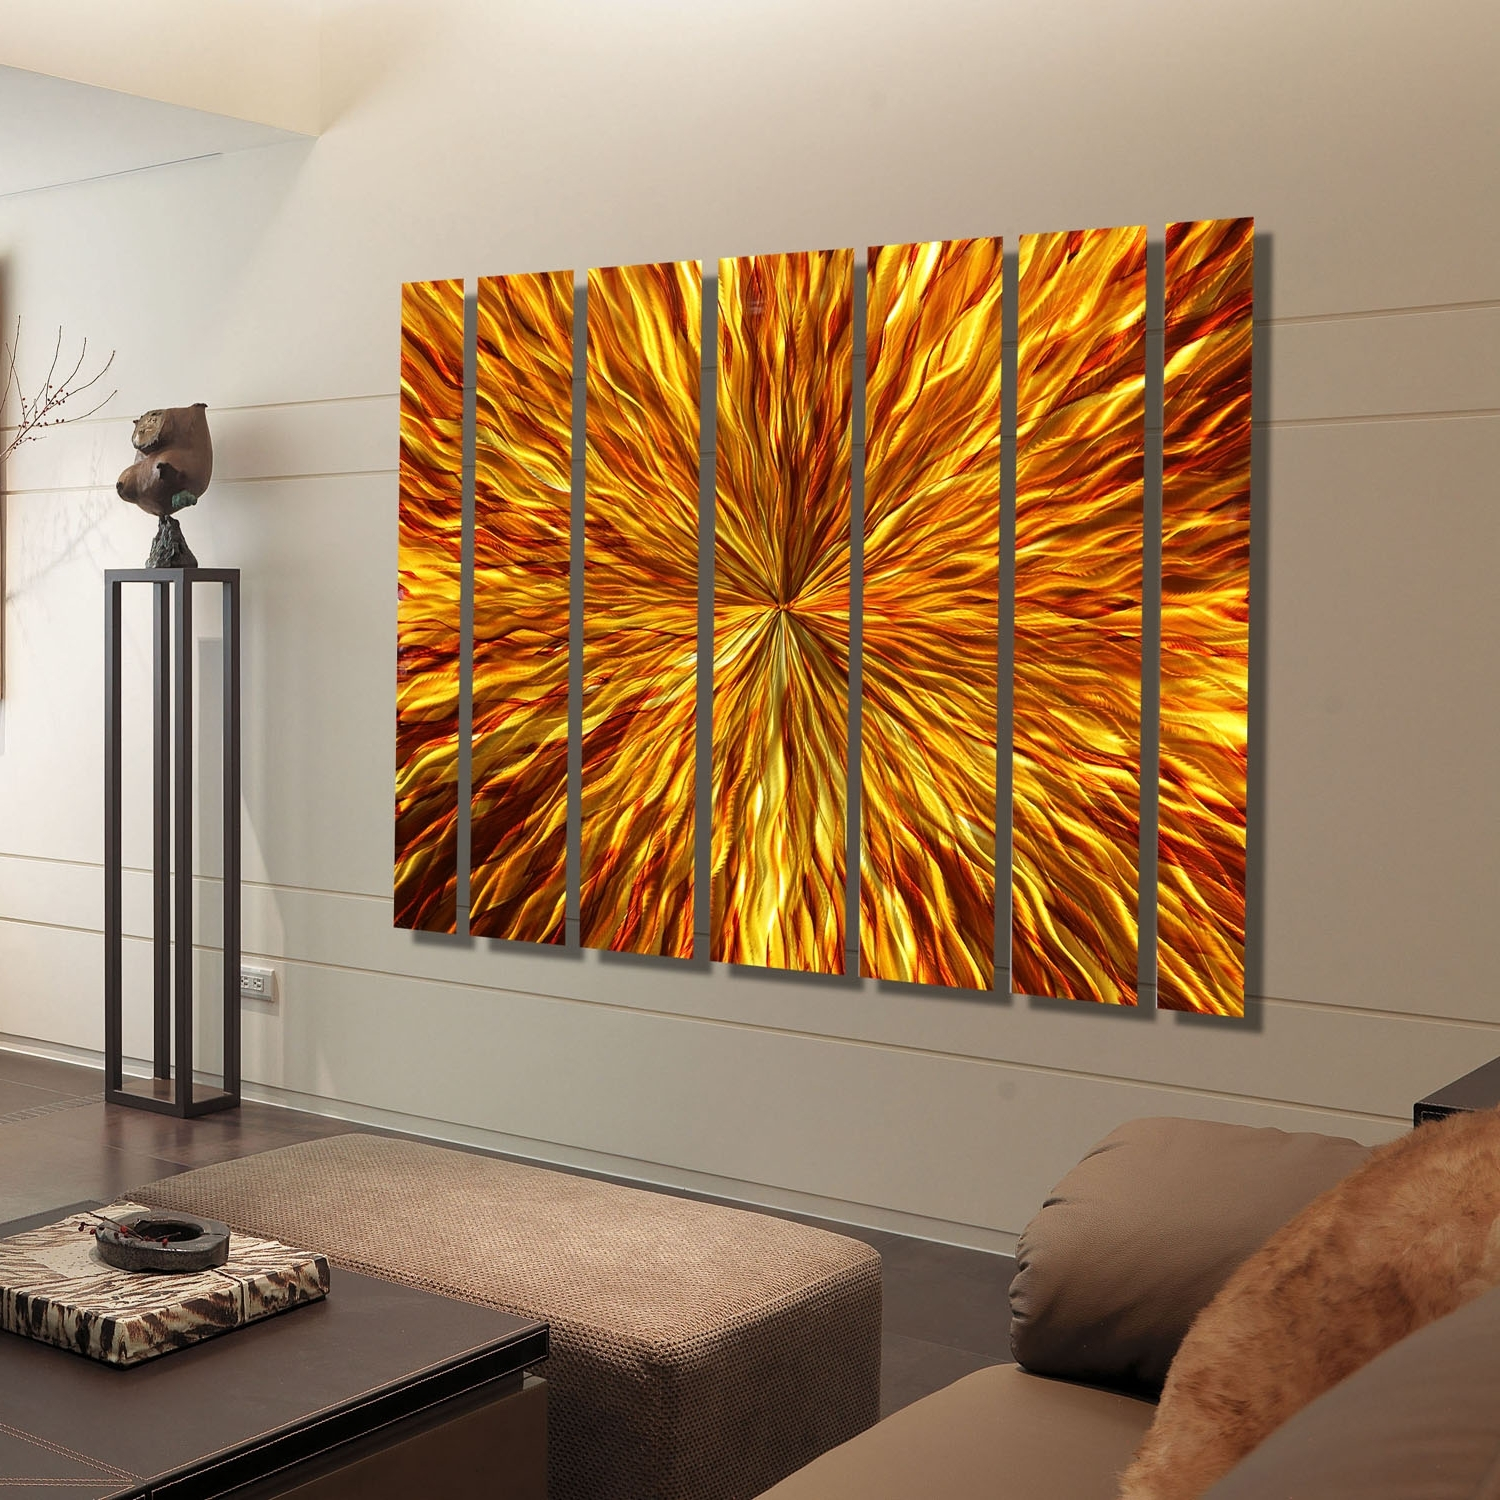 Large Abstract Metal Wall Art Regarding Most Current Home Decor: Wonderful Abstract Metal Wall Art And Amber Vortex Xl (View 5 of 15)